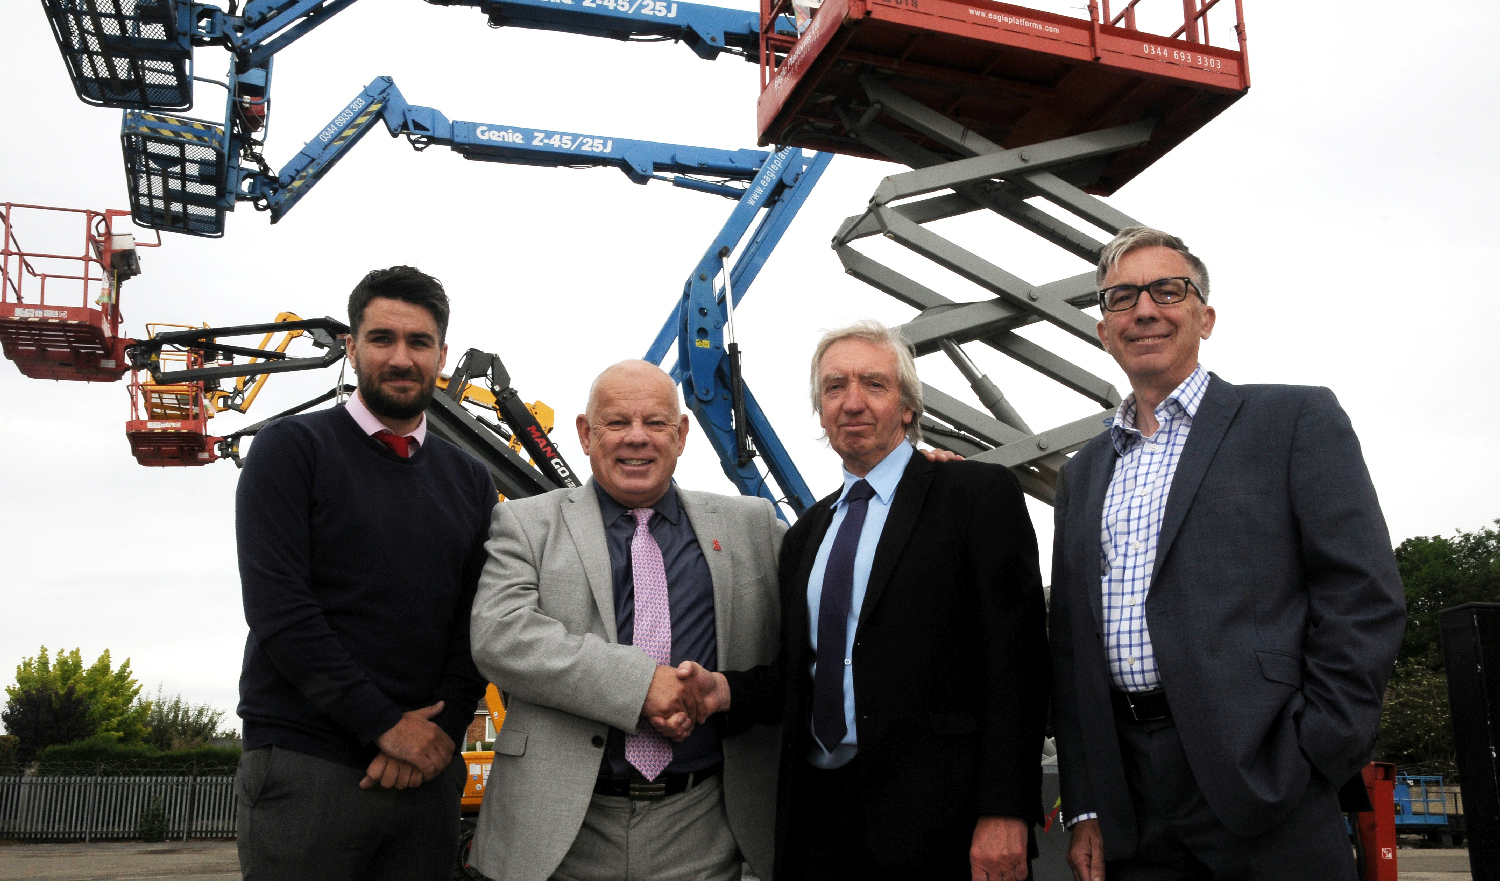 Four men outside standing in front of a large crane.